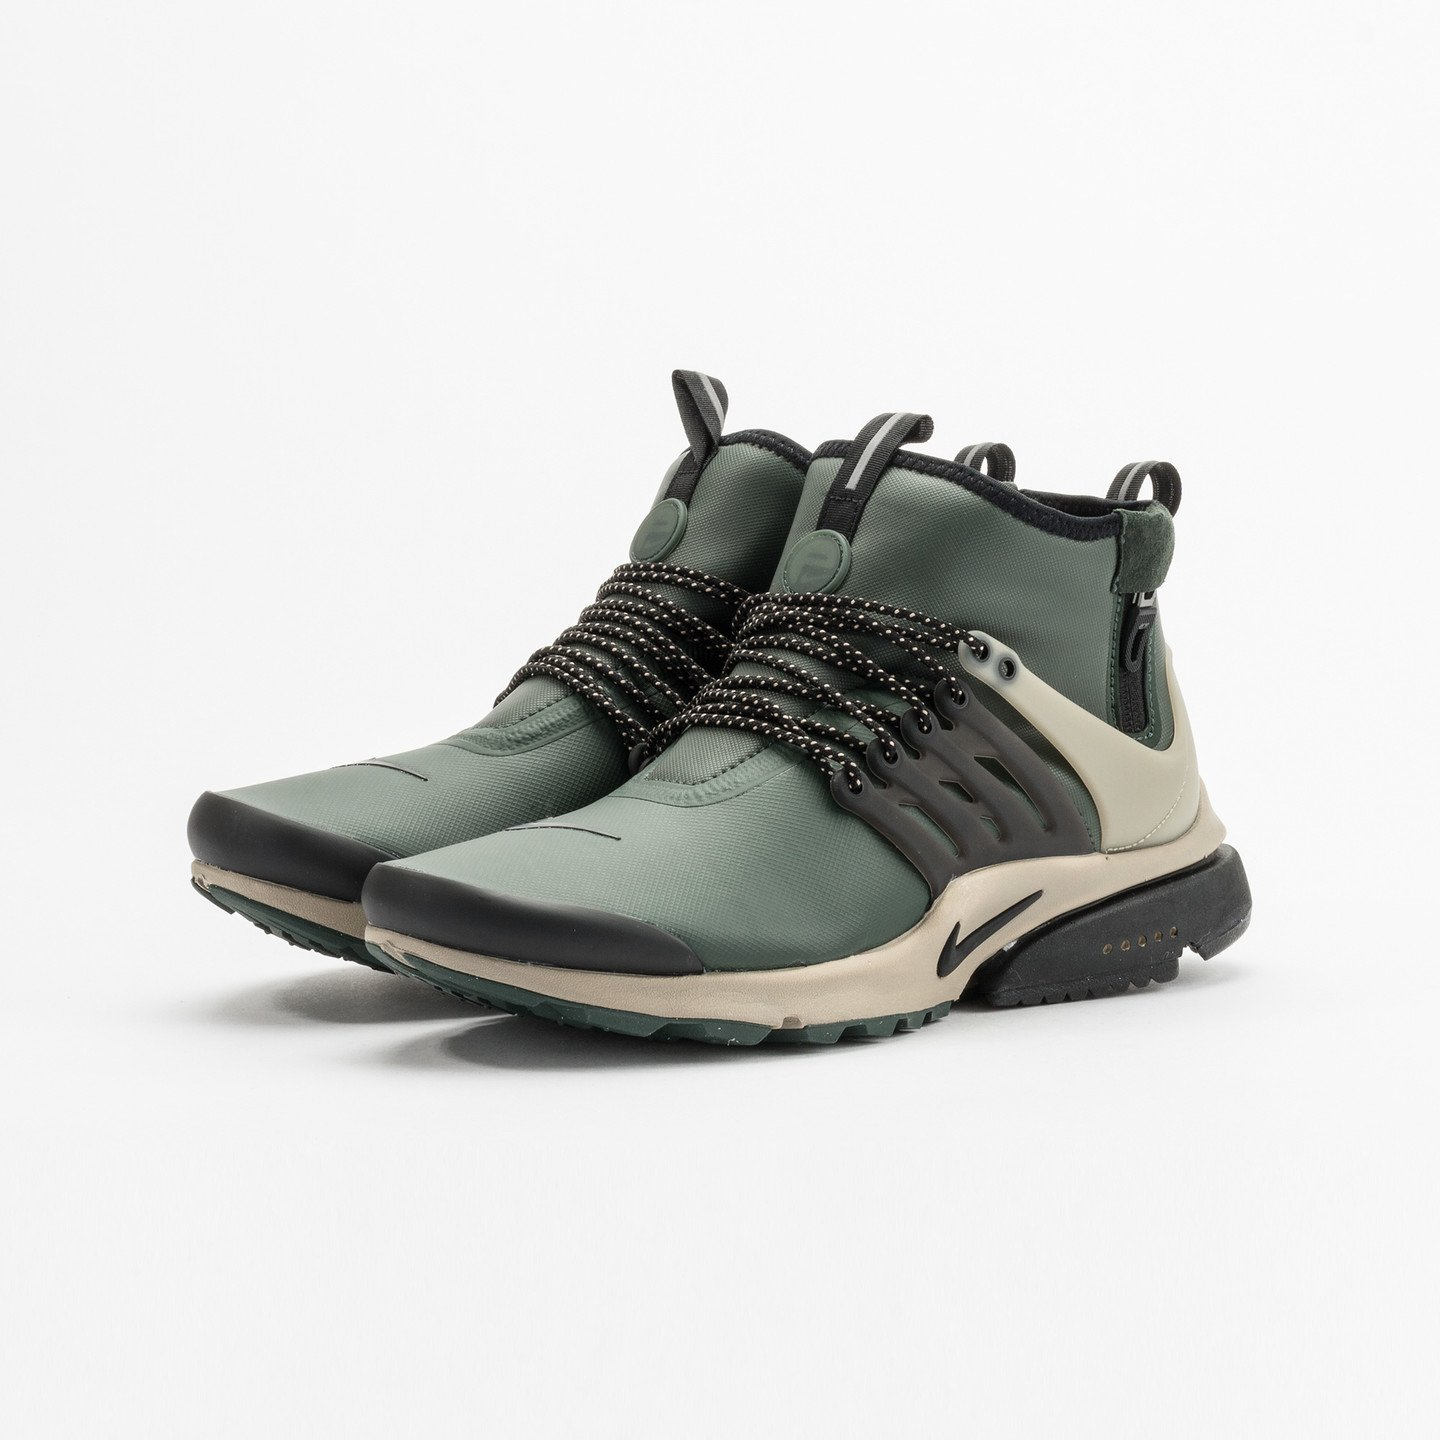 Nike Air Presto Mid Top Utility Grove Green / Black - Khaki 859524-300-44